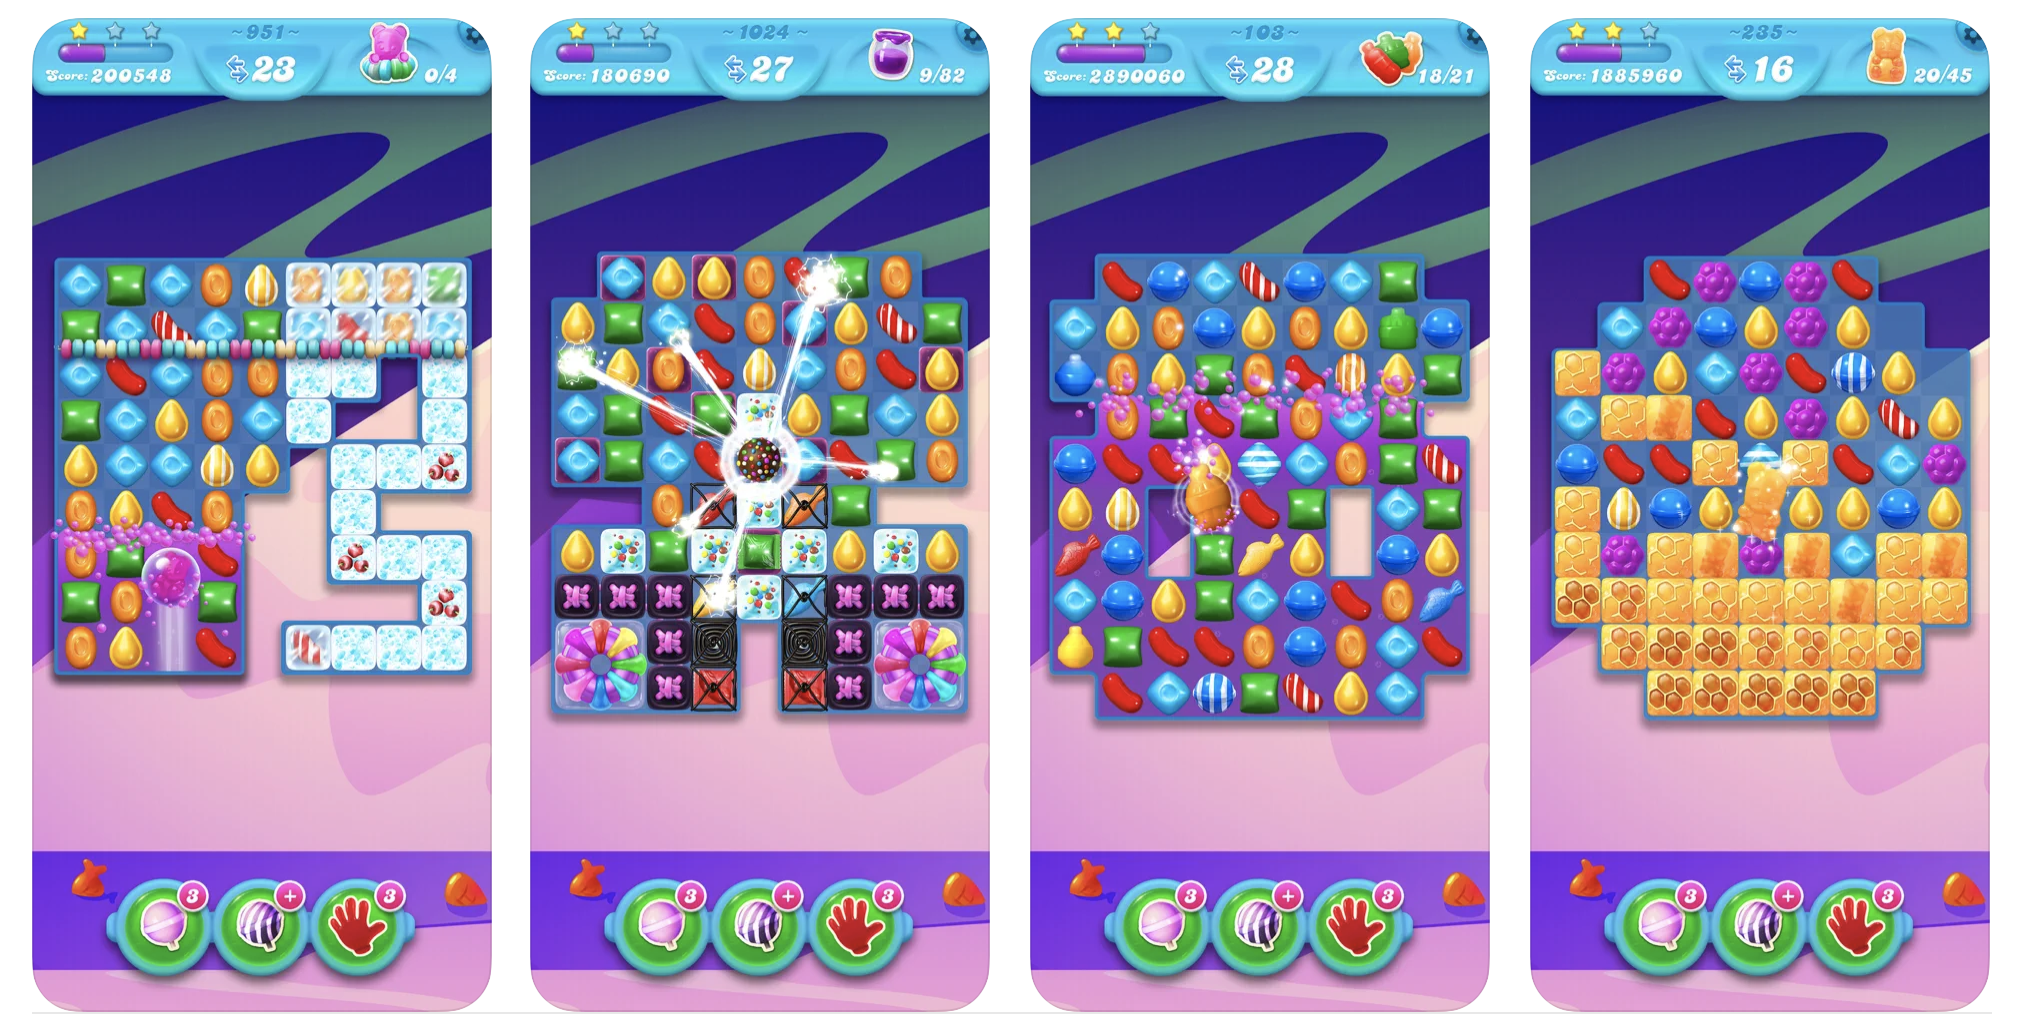 Four screenshots oof the row-clearing game being played